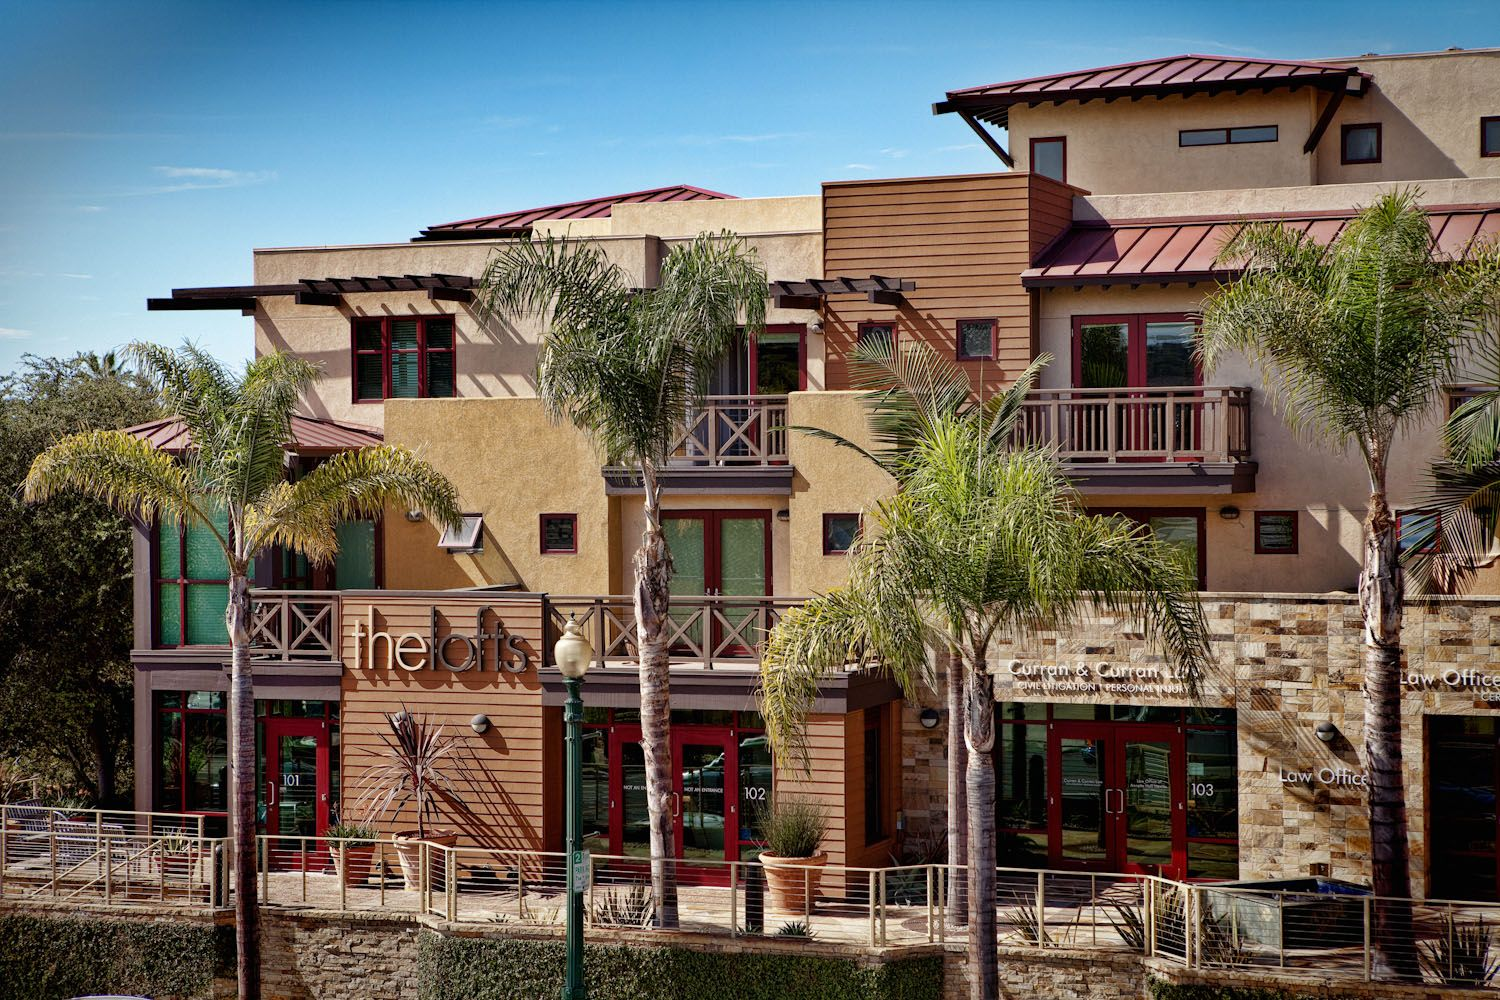 The Lofts At Moonlight Beach, Encinitas